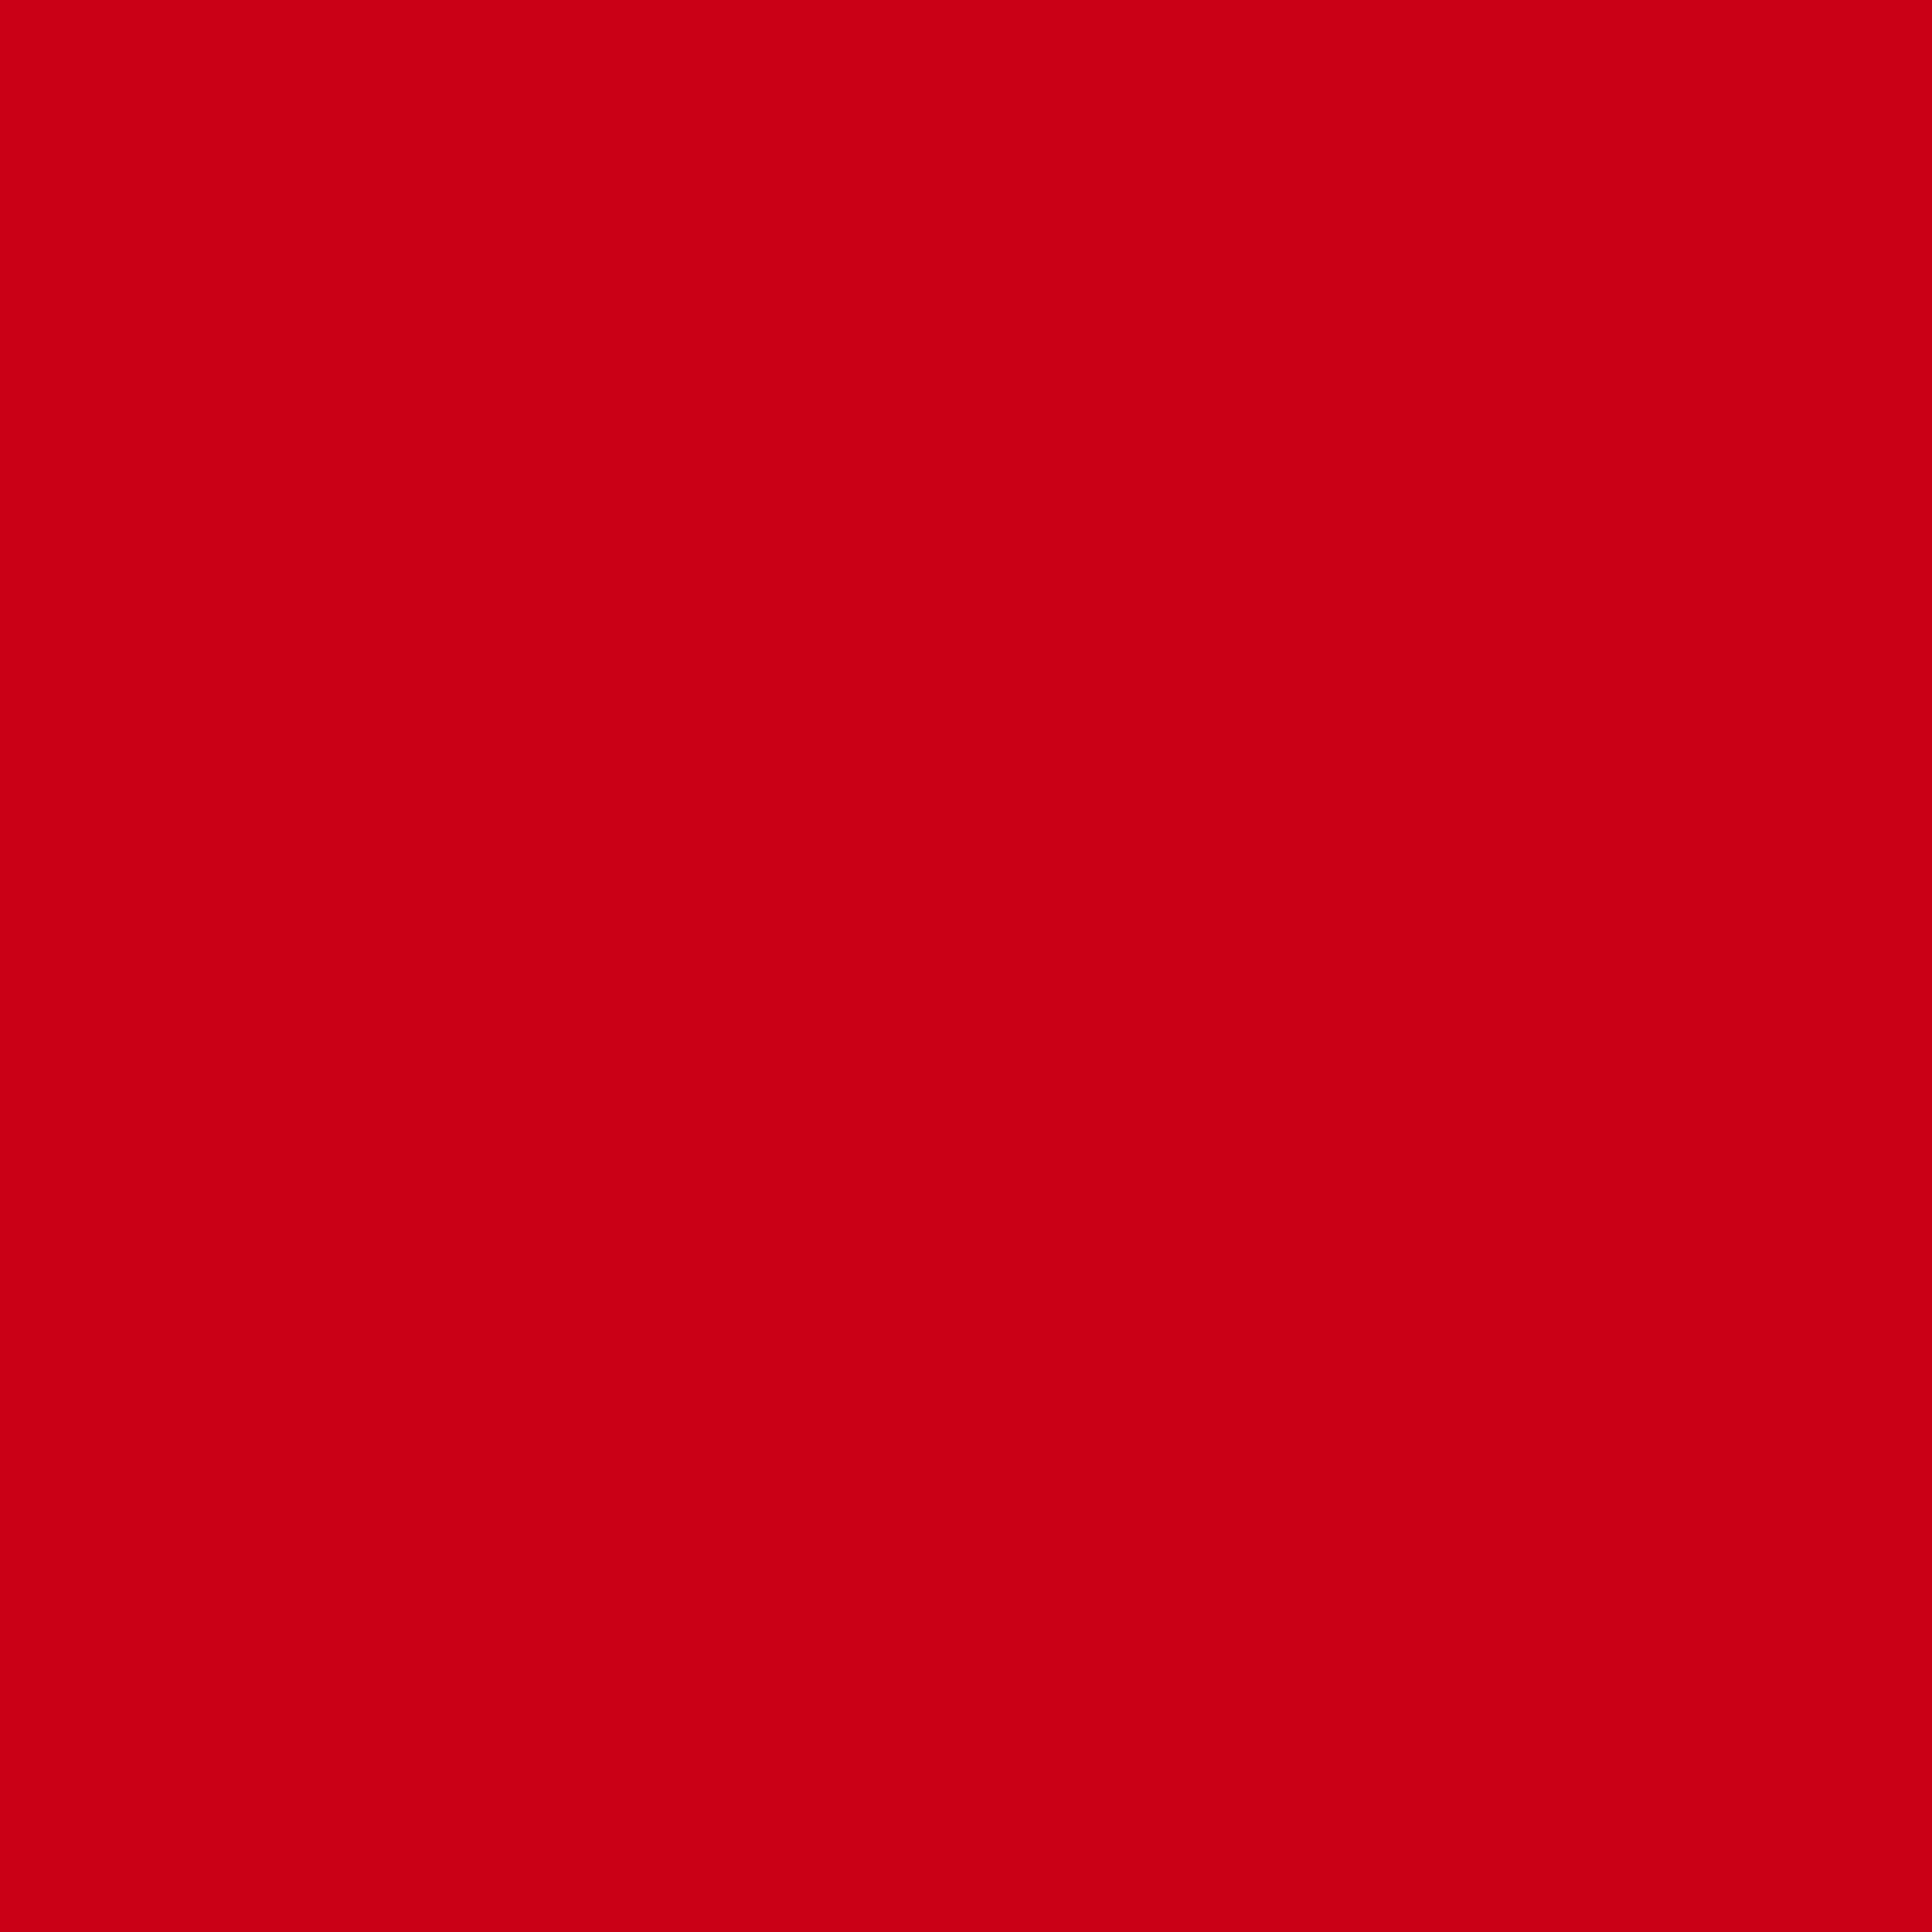 3600x3600 Harvard Crimson Solid Color Background